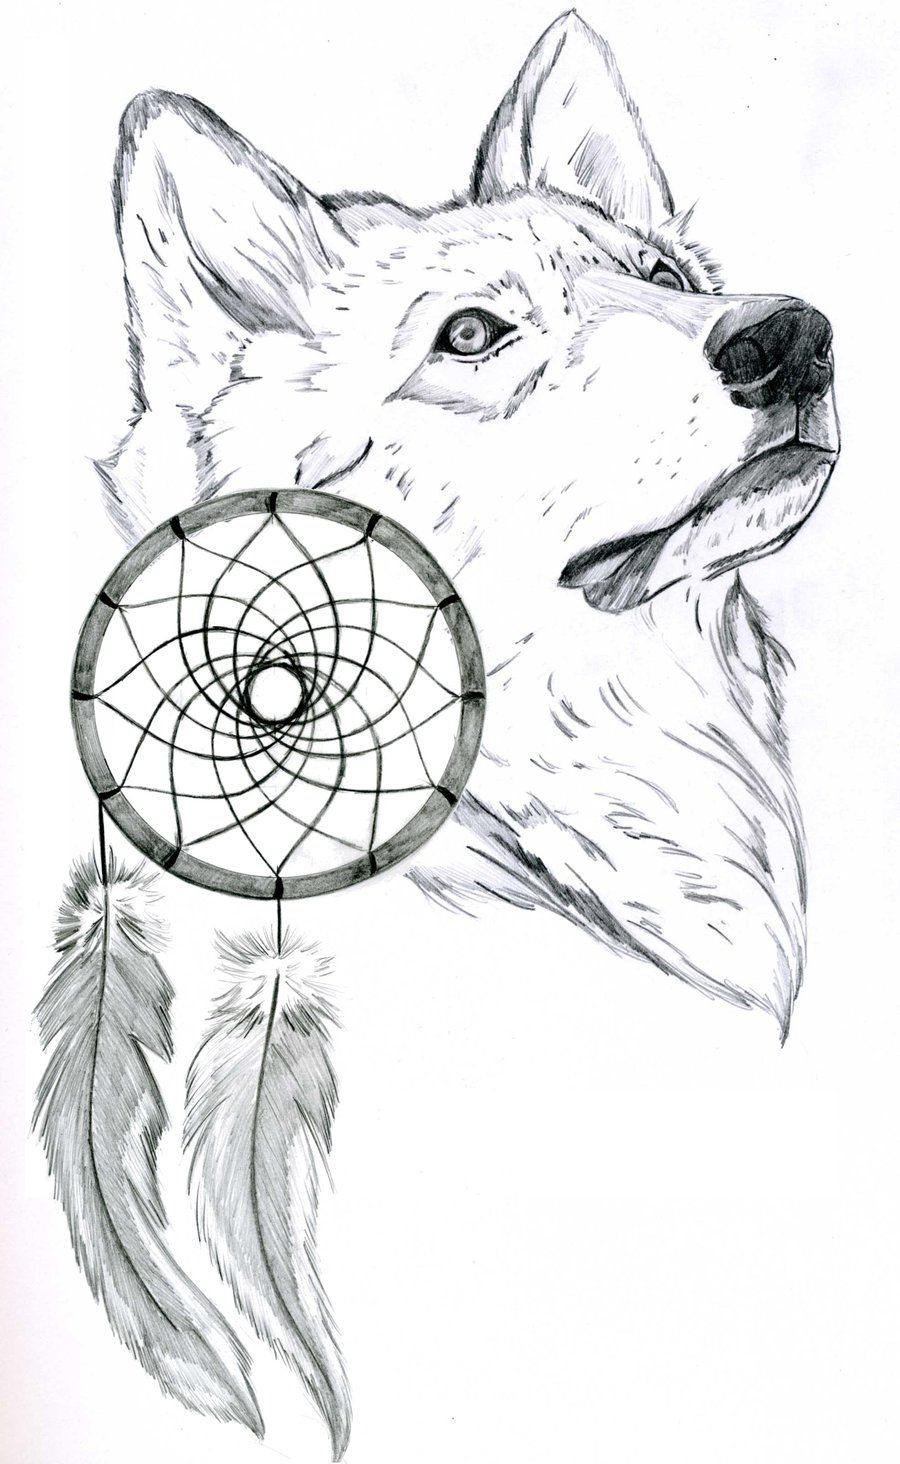 Coloring pages dream catchers - Drawings Of Dream Catchers Wolf And Dream Catcher By Ferrell32